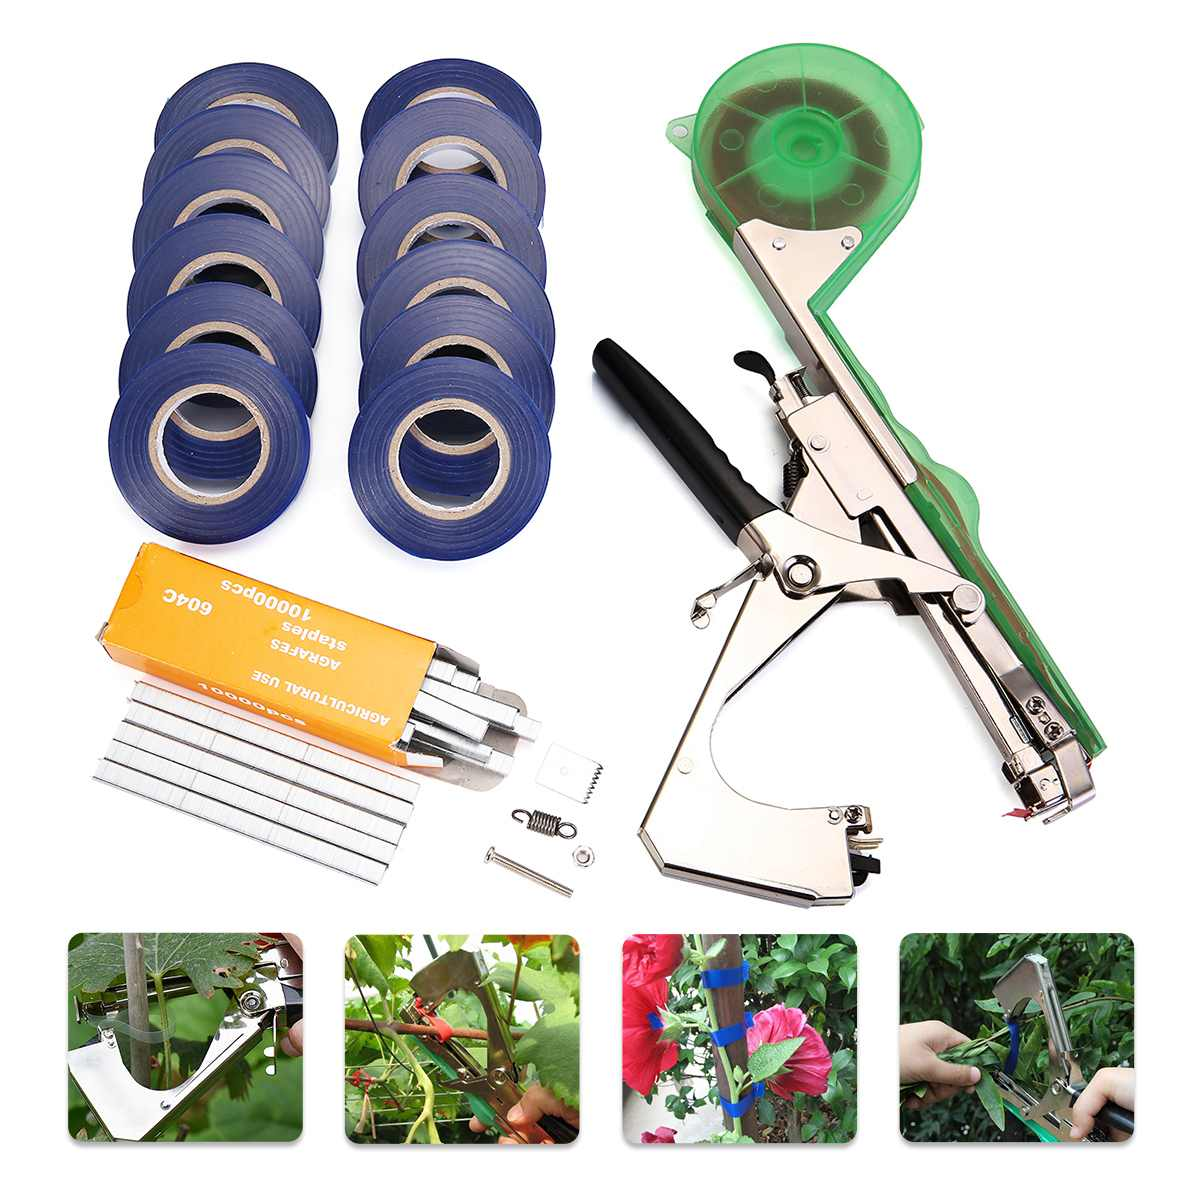 1pc Plant Tying Tool Tapener Machine Branch Hand Tying Machine Tapetool Tapener Cutter Garden Tool